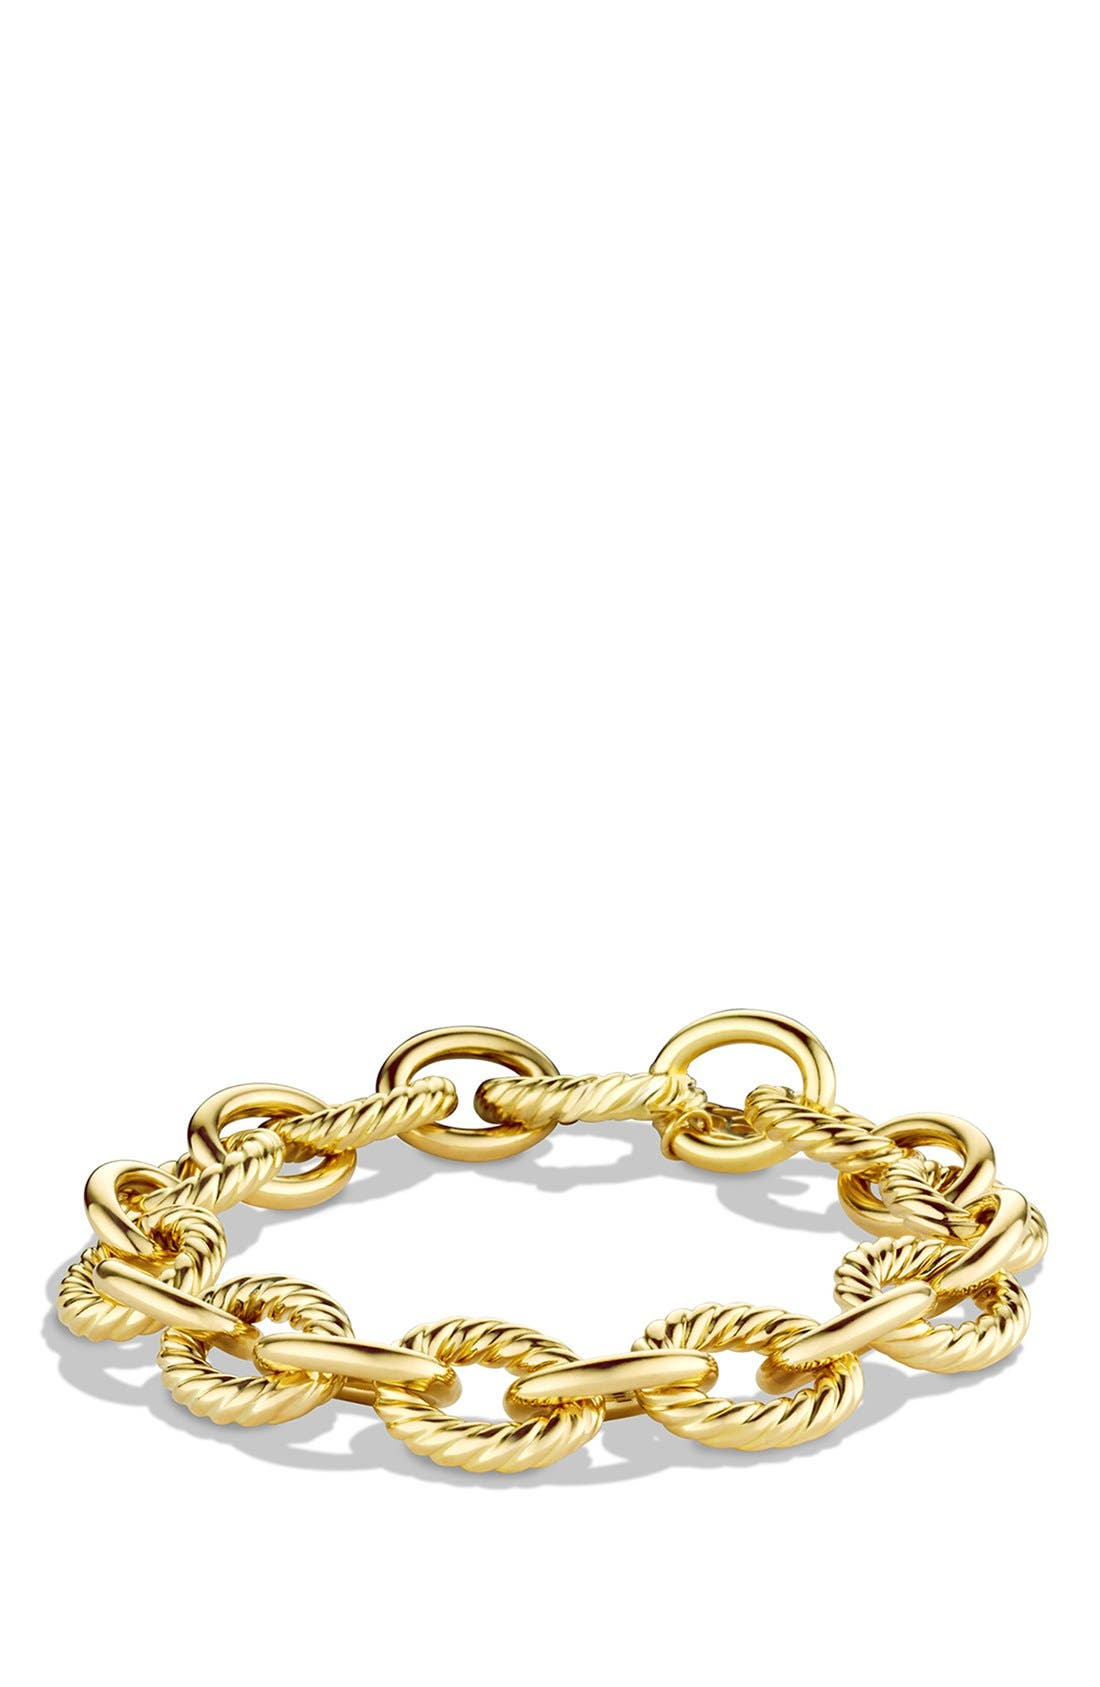 Alternate Image 1 Selected - David Yurman 'Oval' Large Link Bracelet in Gold